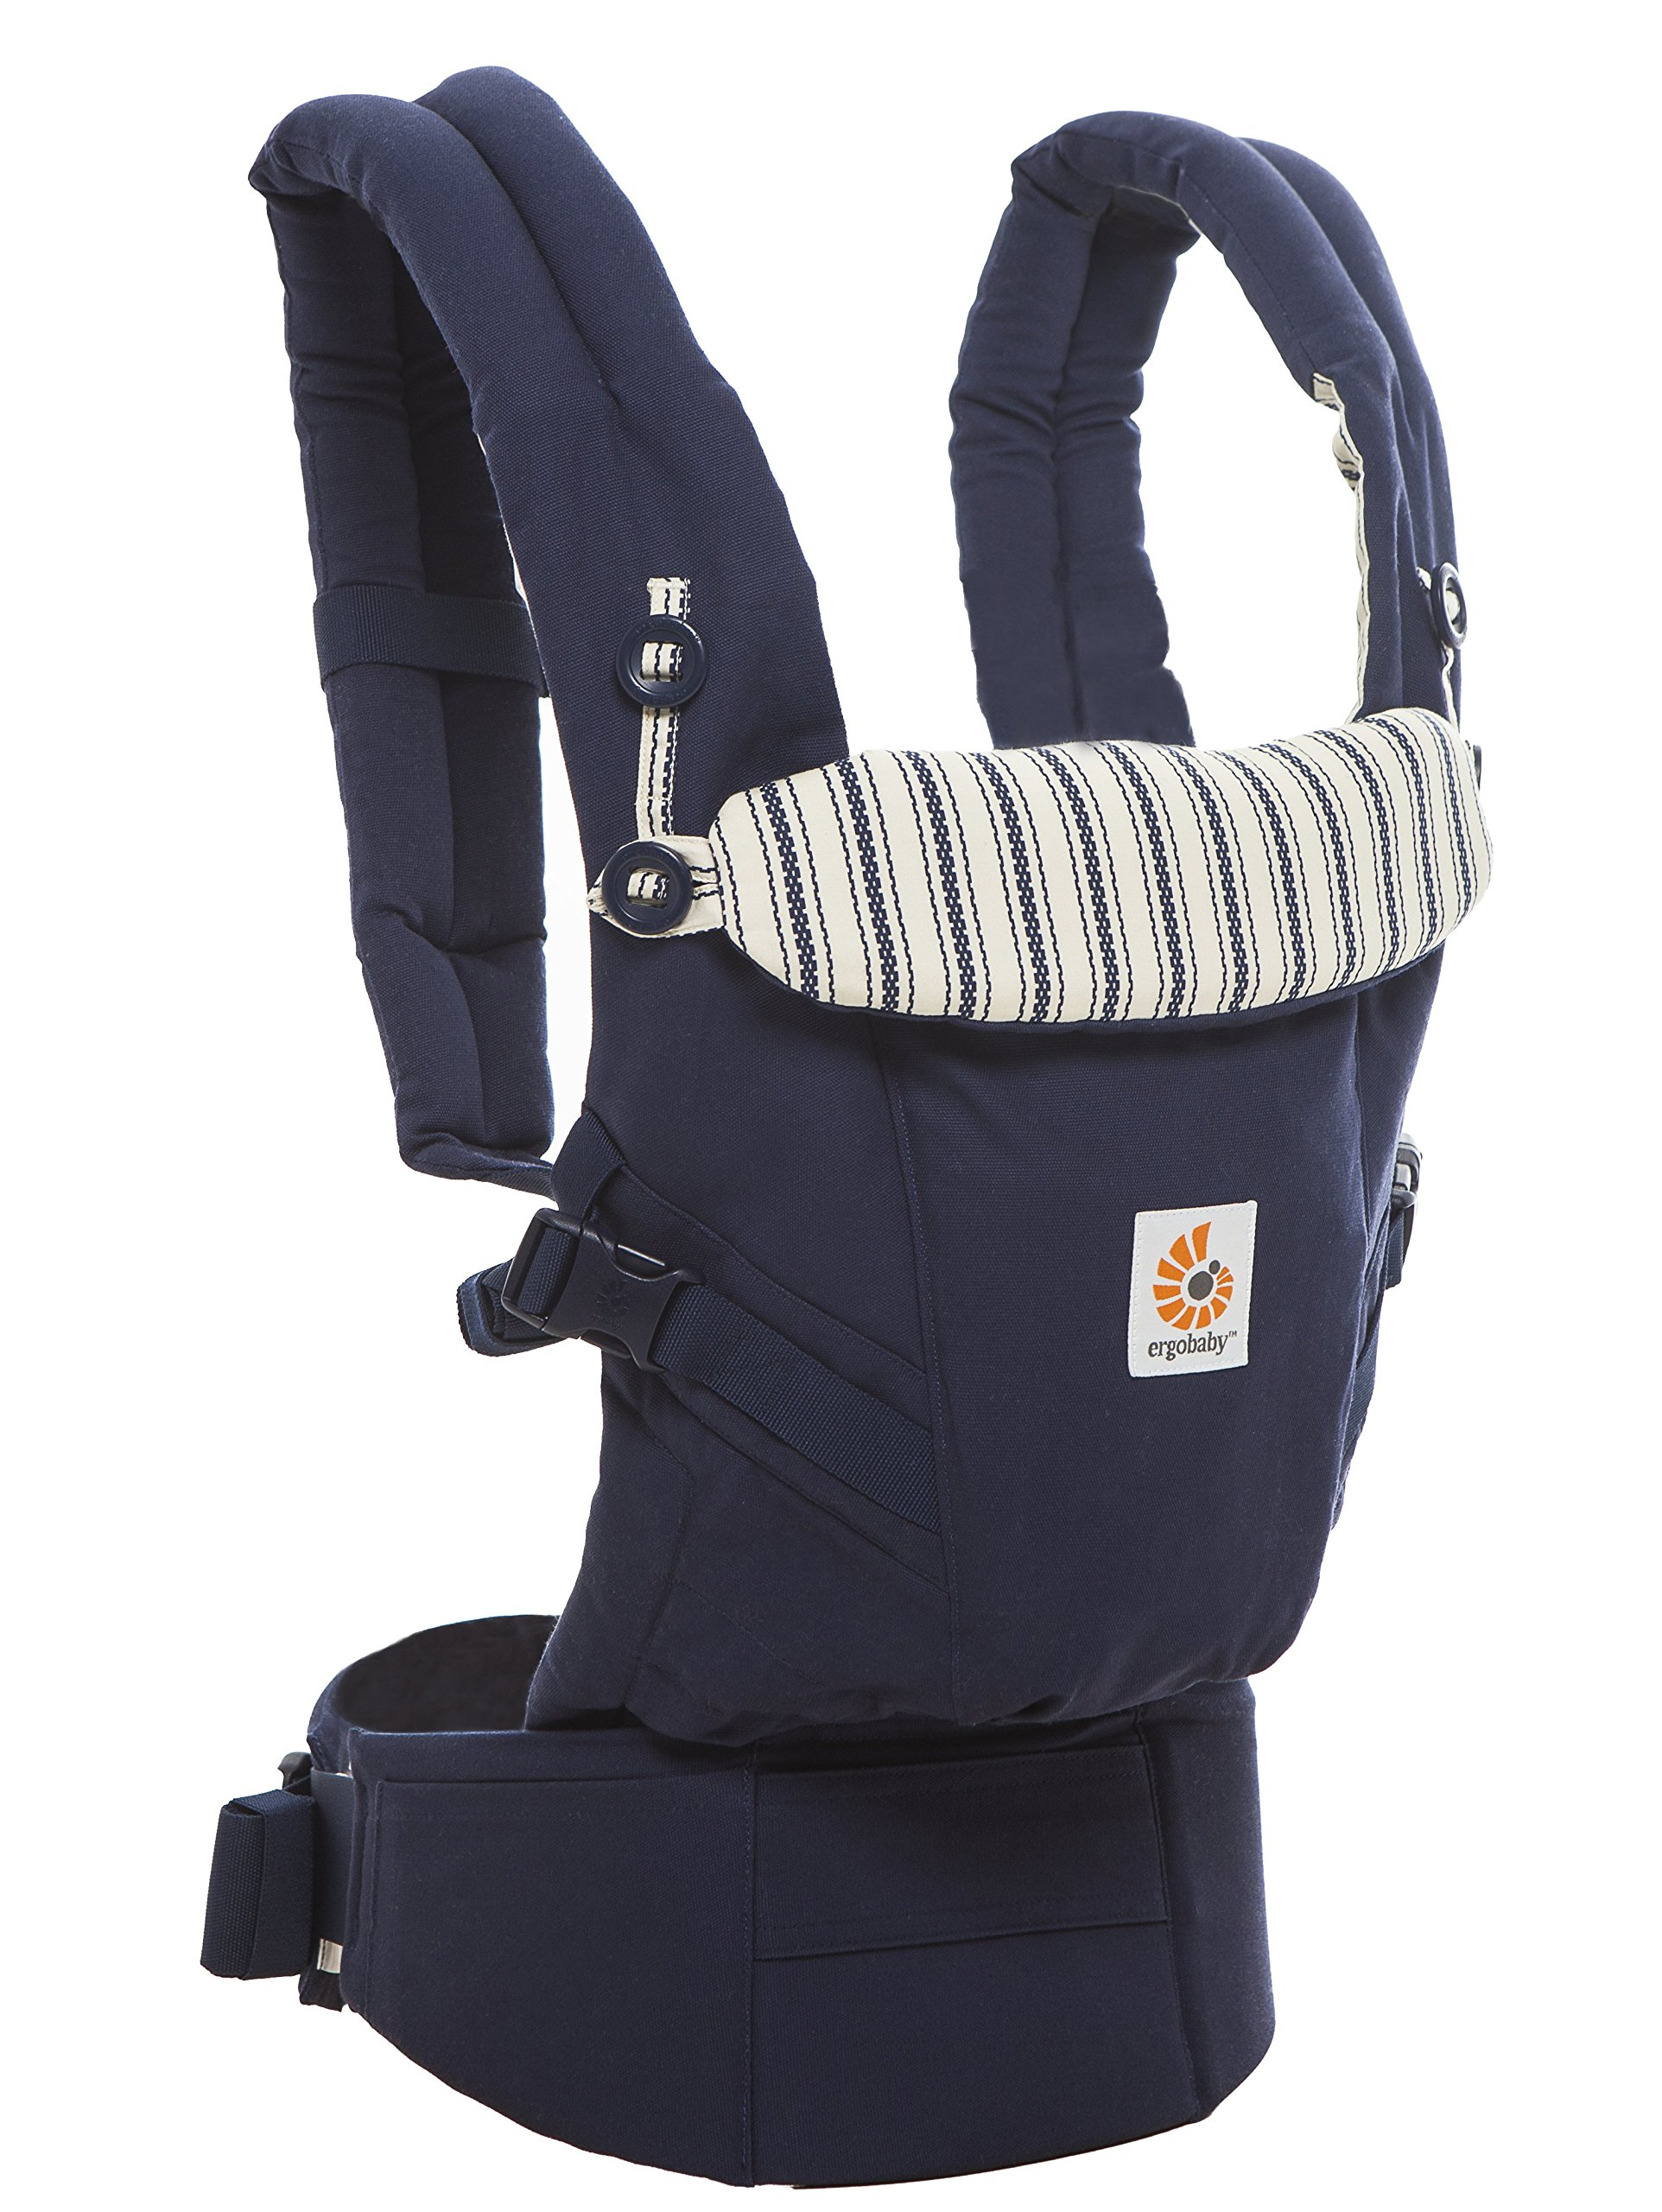 Ergobaby Baby Carrier for Newborn to Toddler, Admiral Blue Adapt 3-Position Ergonomic Child Carrier Backpack Ergobaby Carrier for newborns - The ergonomic bucket seat gradually adjusts to your growing baby, to ensure baby is seated in a natural frog-leg position (M-shape position) from newborn to toddler (3.2-20kg / 7-45lbs). NEW - Now with lumbar support. Long-wearing comfort for parents with even weight distribution between hips and shoulders. Lumbar support waistbelt that can be adjusted to the height of the carry position for extra, long-wearing comfort. 3carry positions: front-inward, hip and back. The carrier has a padded, foldable head and neck support and a tuck-away baby hood for sun protection (UPF50+) and privacy. It is possible to breastfeed in the carrier. 3